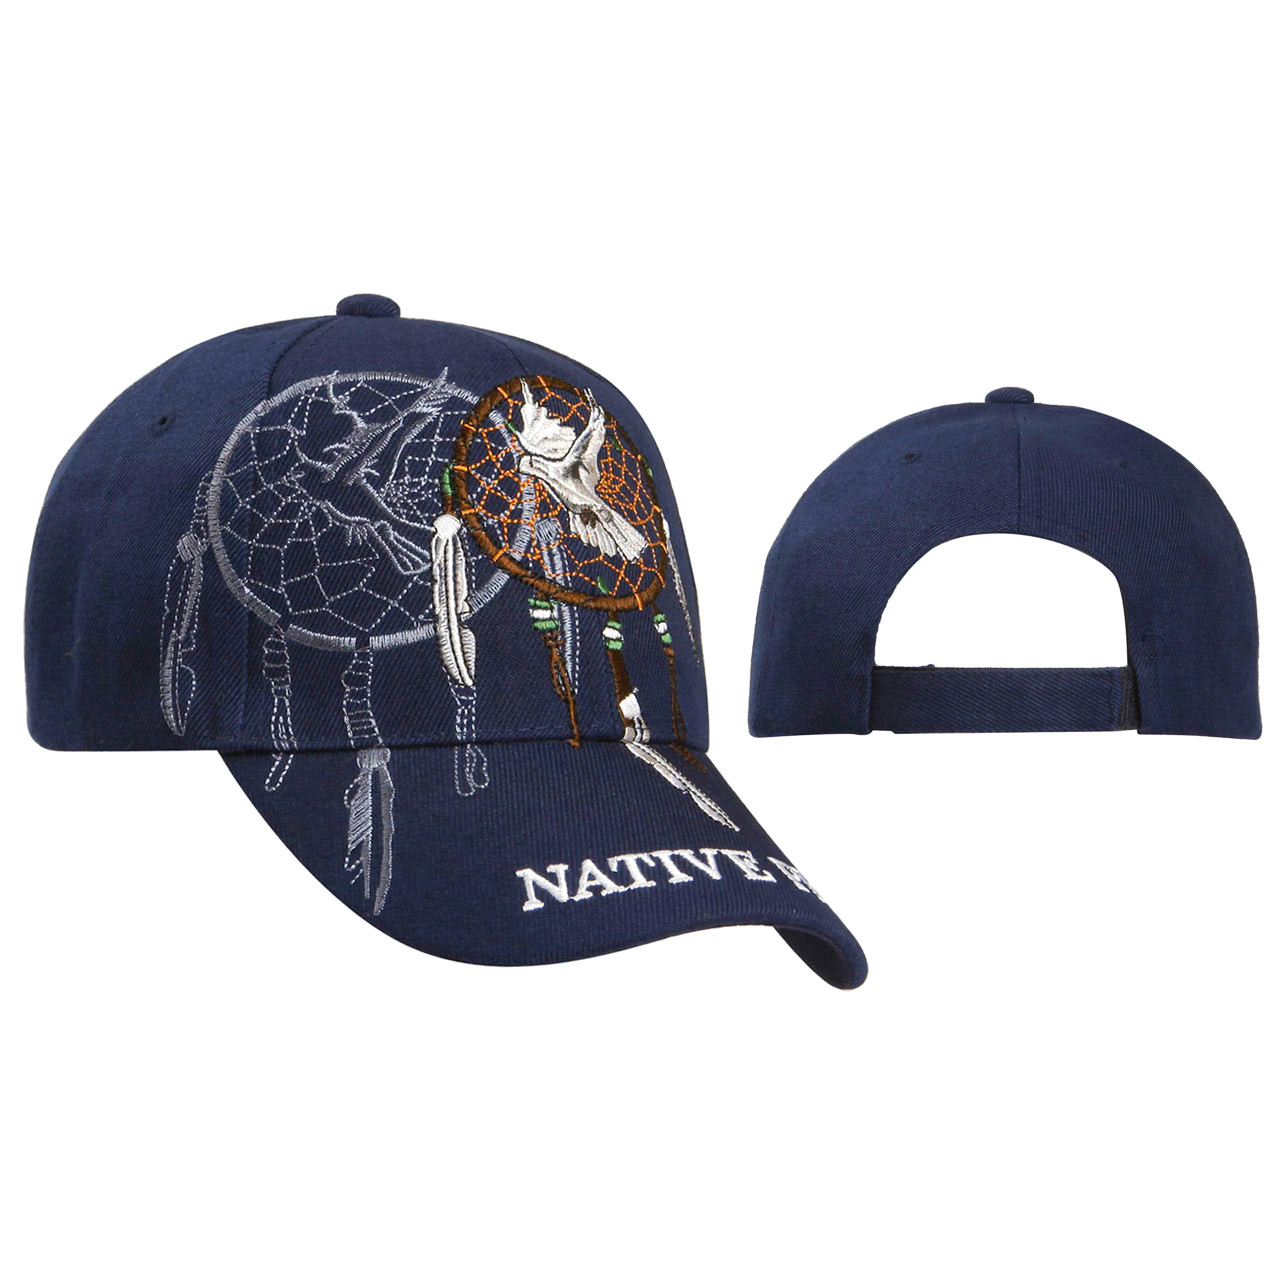 Baseball Caps Wholesale C5197 ~ Dreamcatcher with Dove and Native Pride a7576d72308